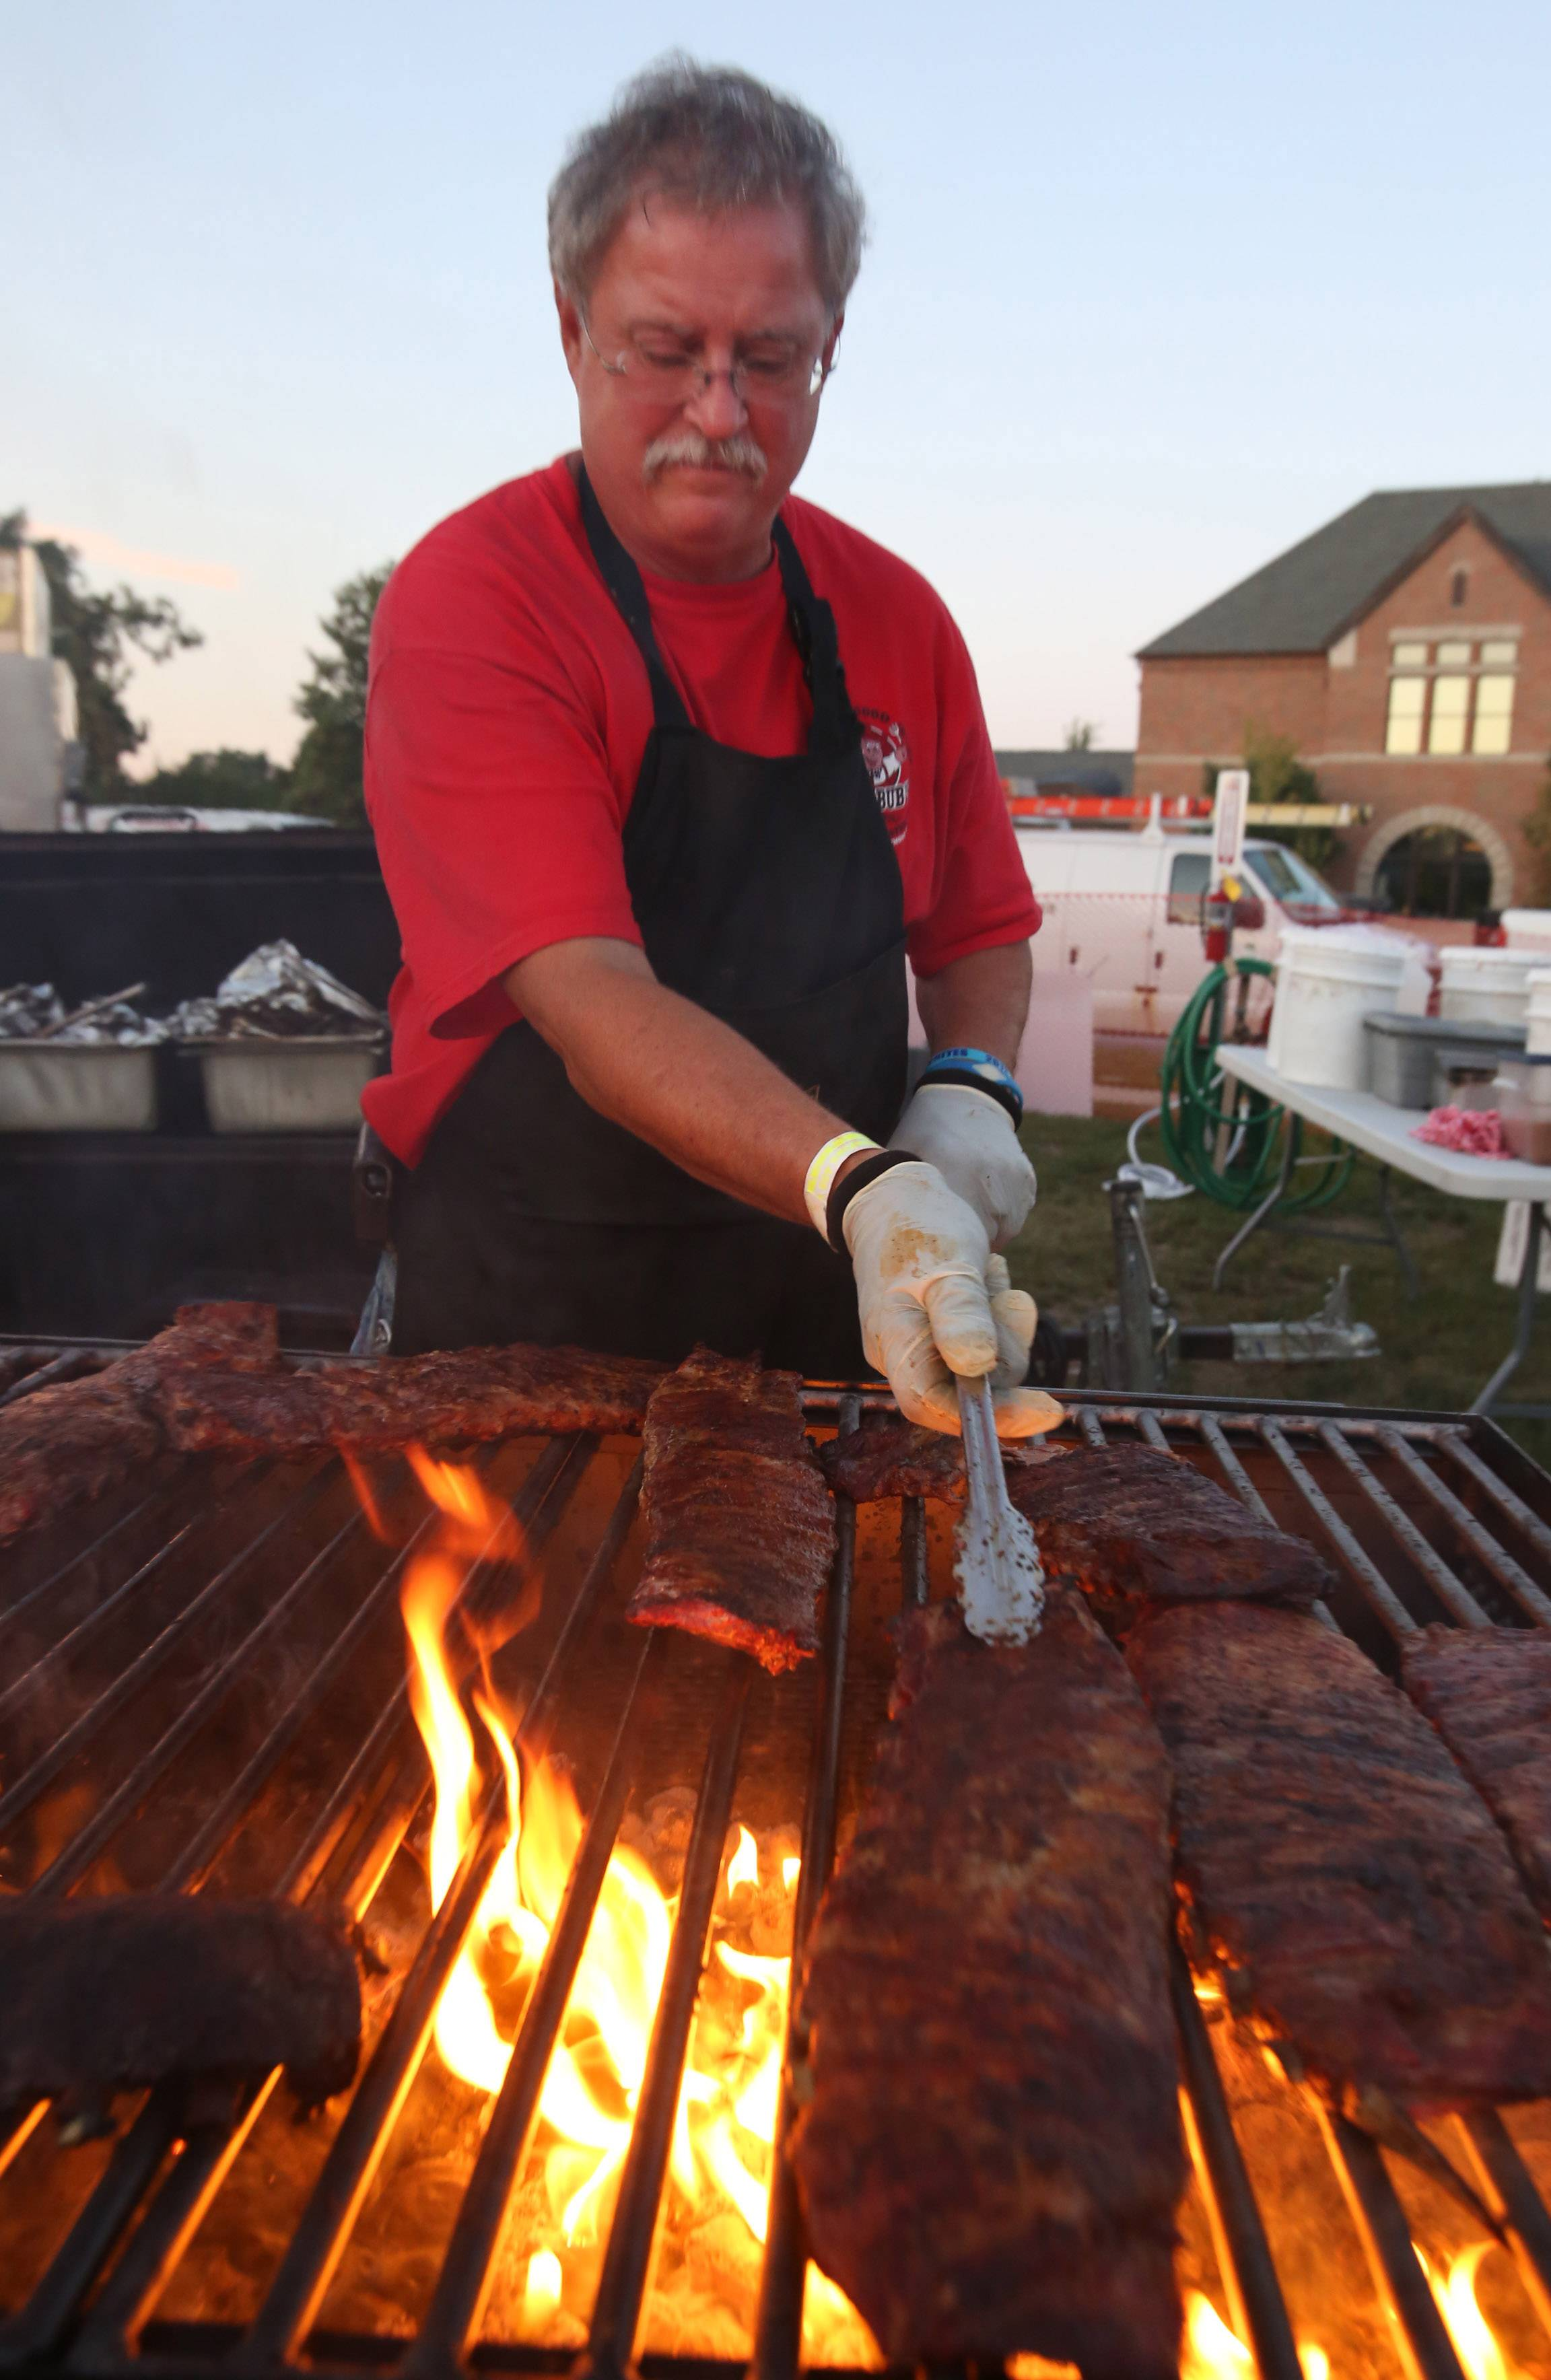 The Vernon Hills Park District's fourth annual Little Bear Ribfest will be Aug. 22 and 23 in Century Park in Vernon Hills.